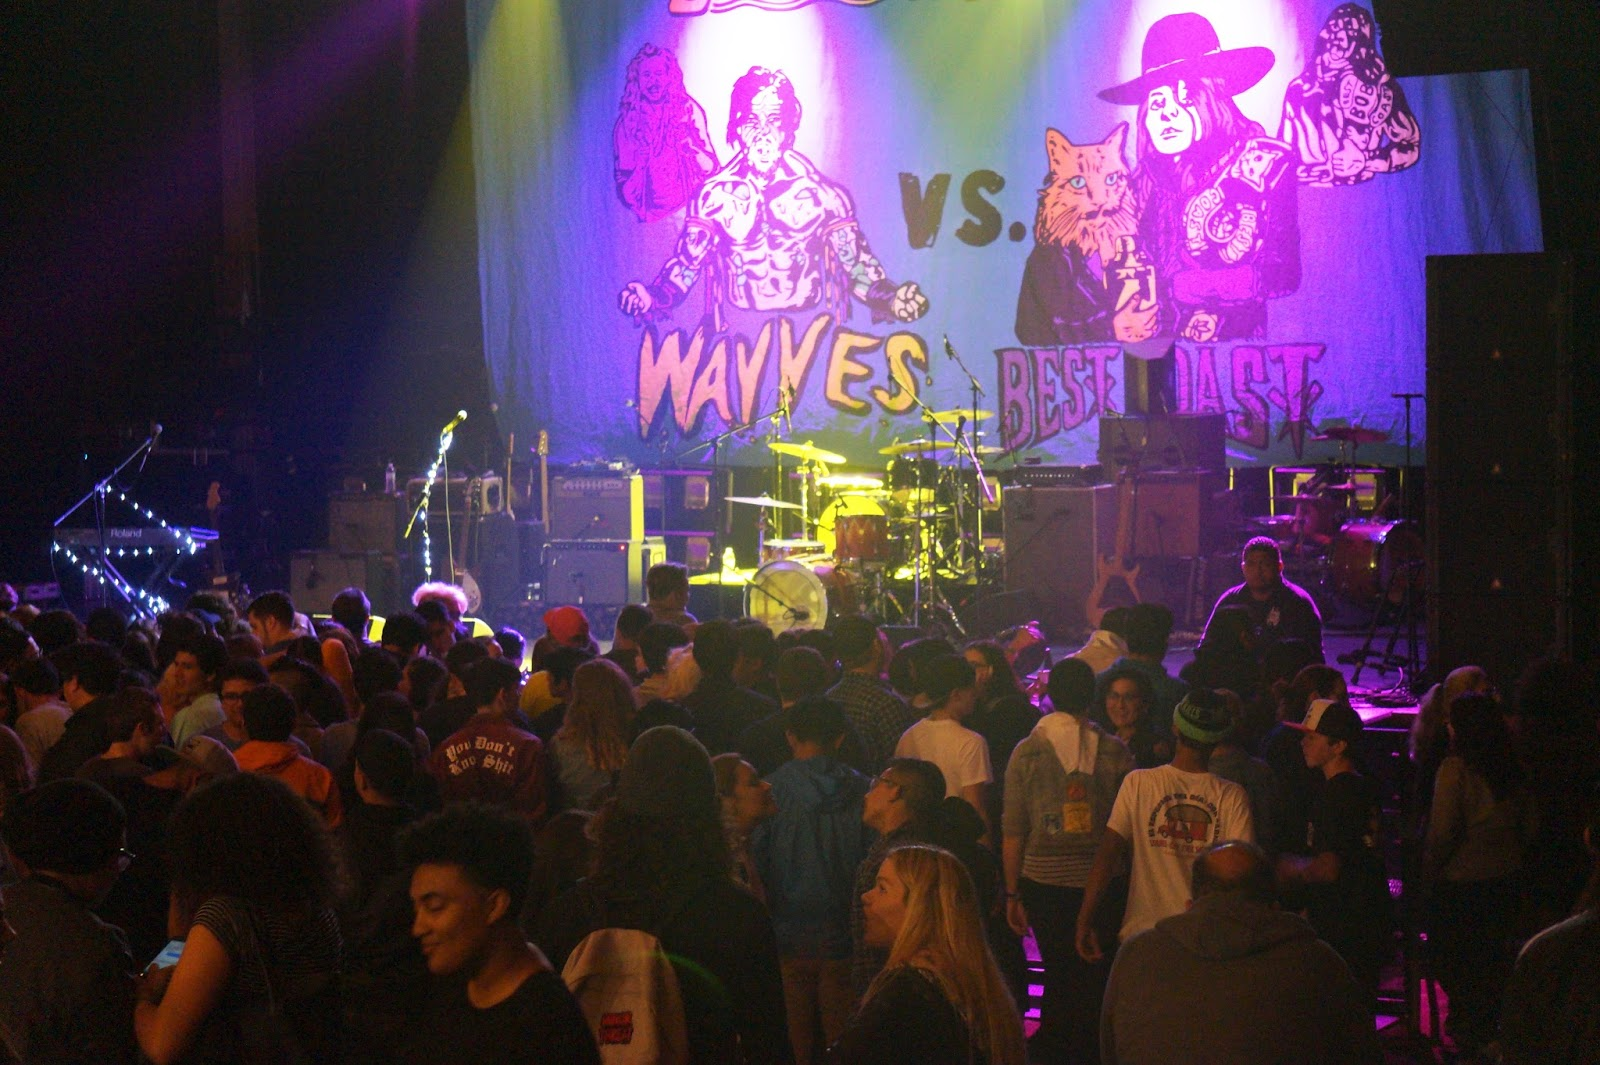 The Observatory, Wavves, Best Coast